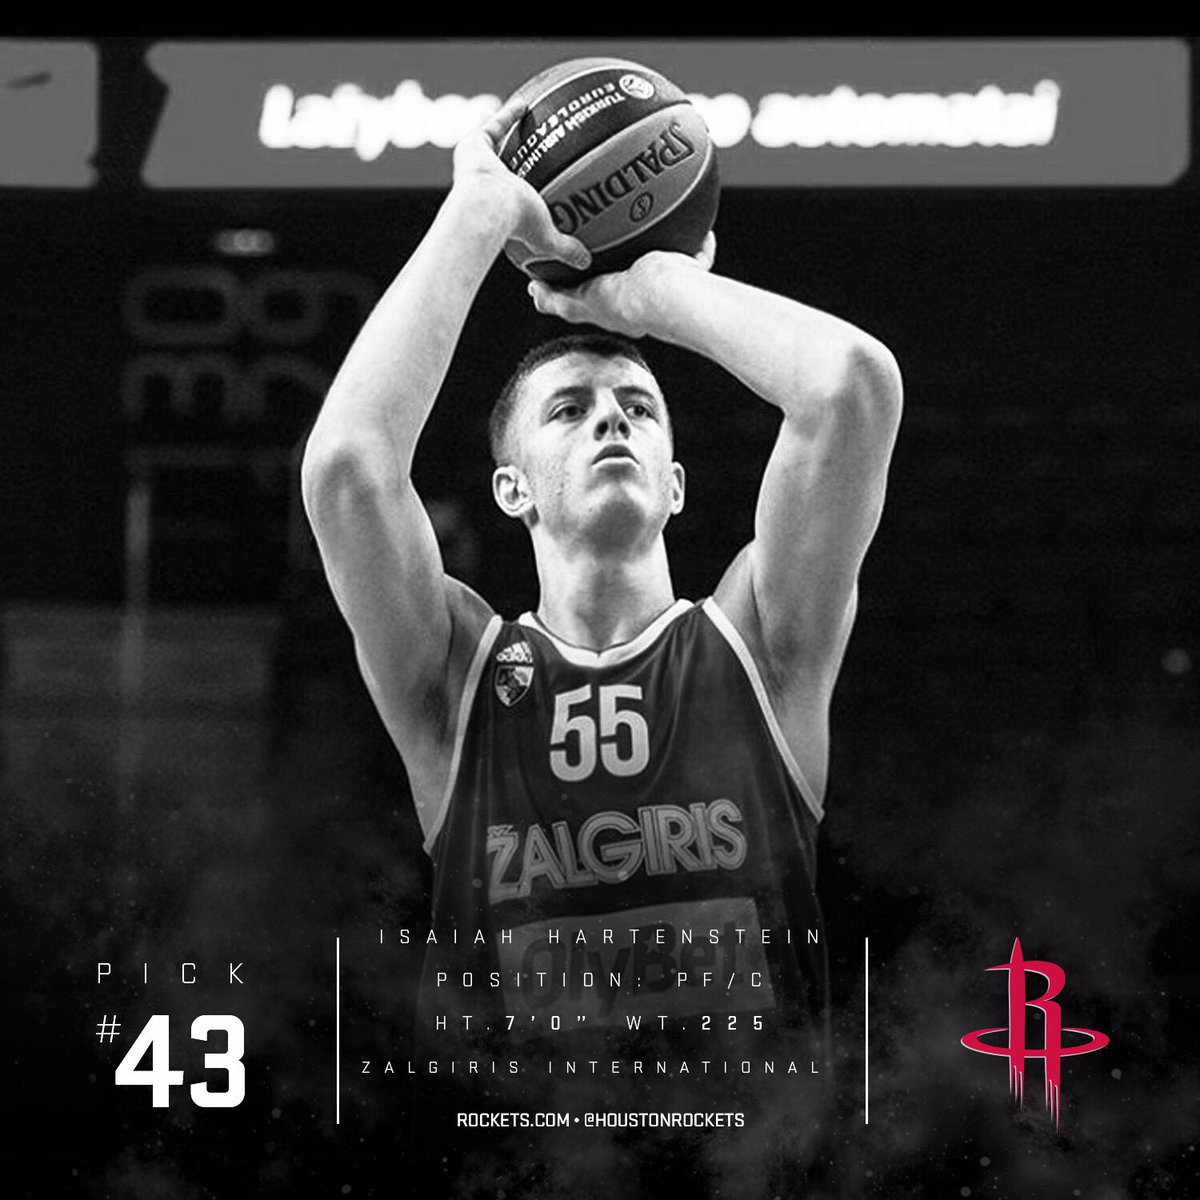 With the 43rd pick in the 2017 #NBAdraft the Rockets select Isaiah Hartenstein.